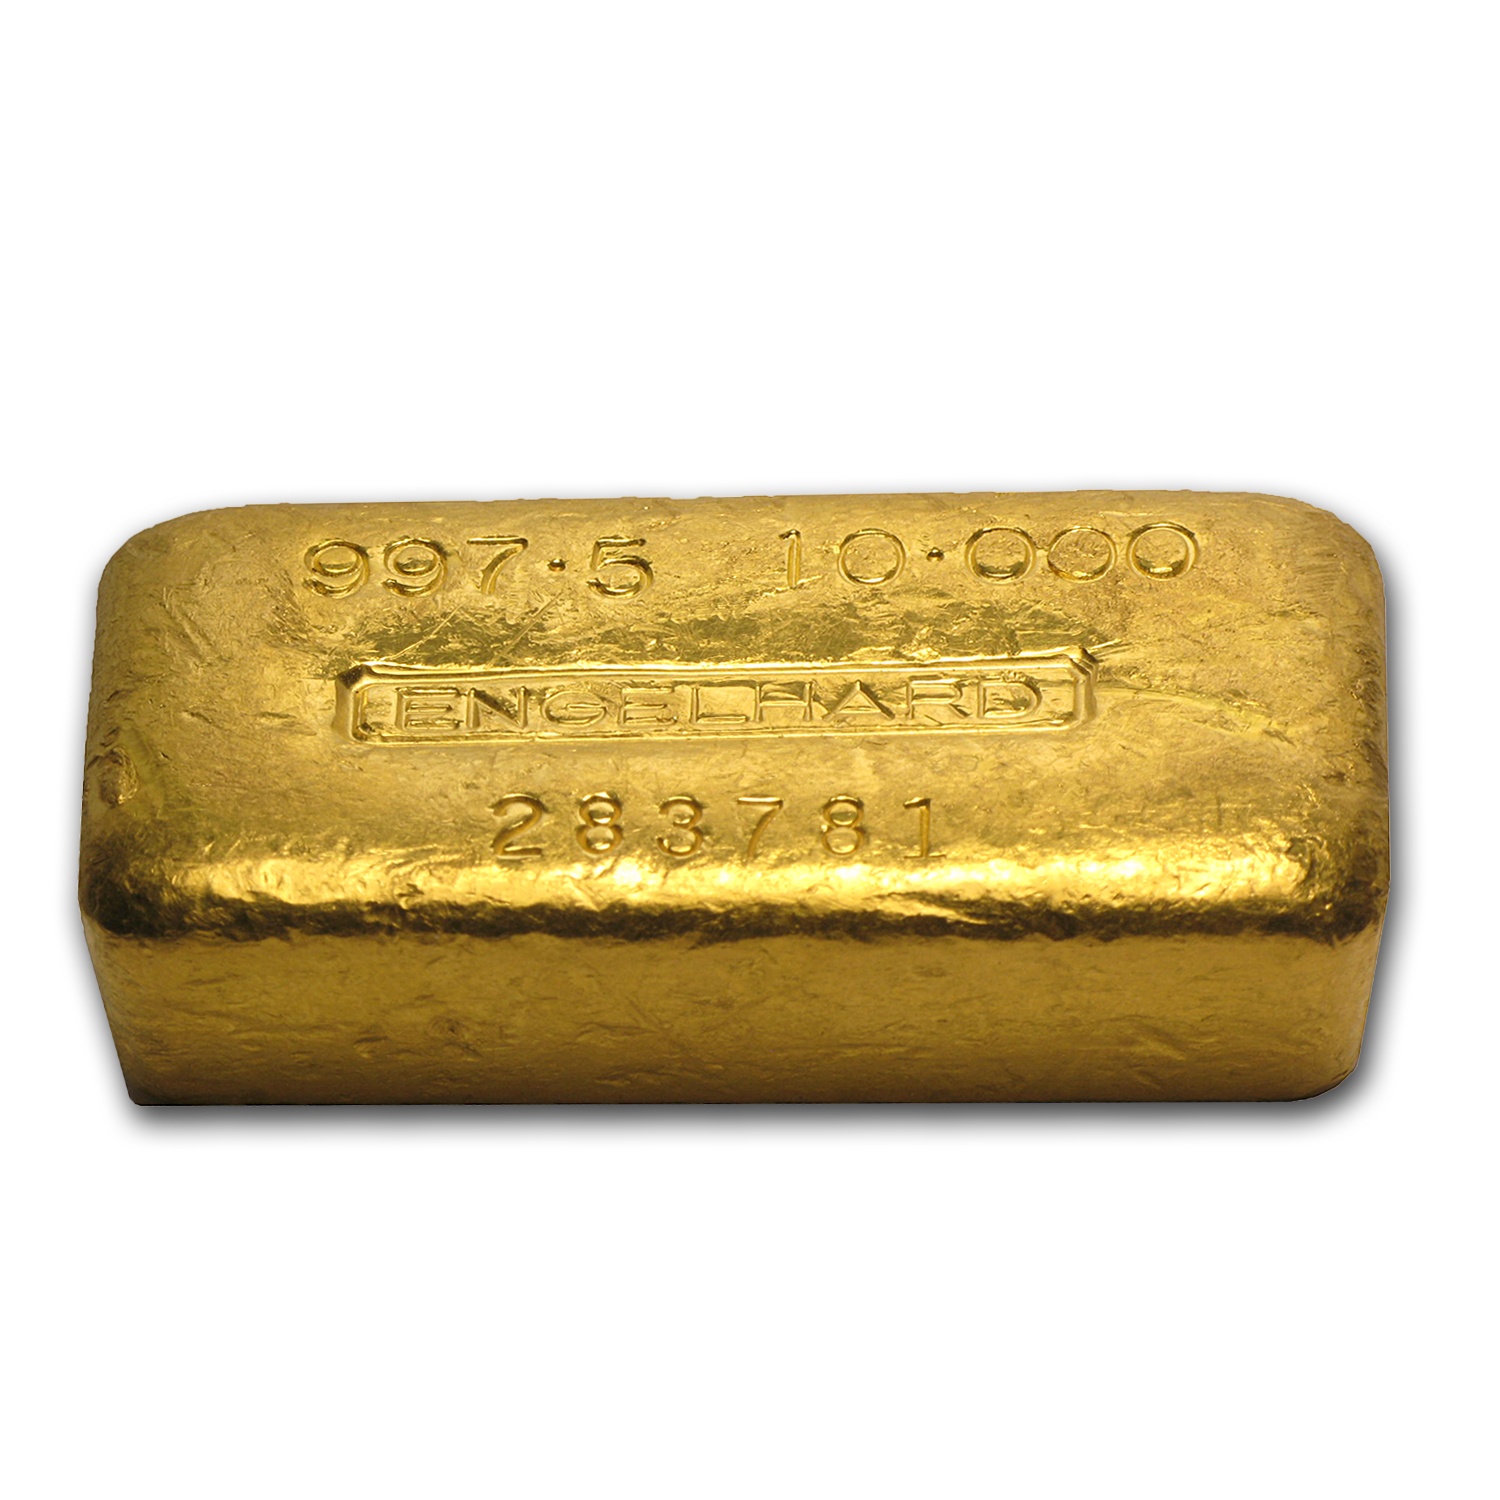 10 Oz Gold Bar Engelhard Loaf Style Poured 997 5 Fine